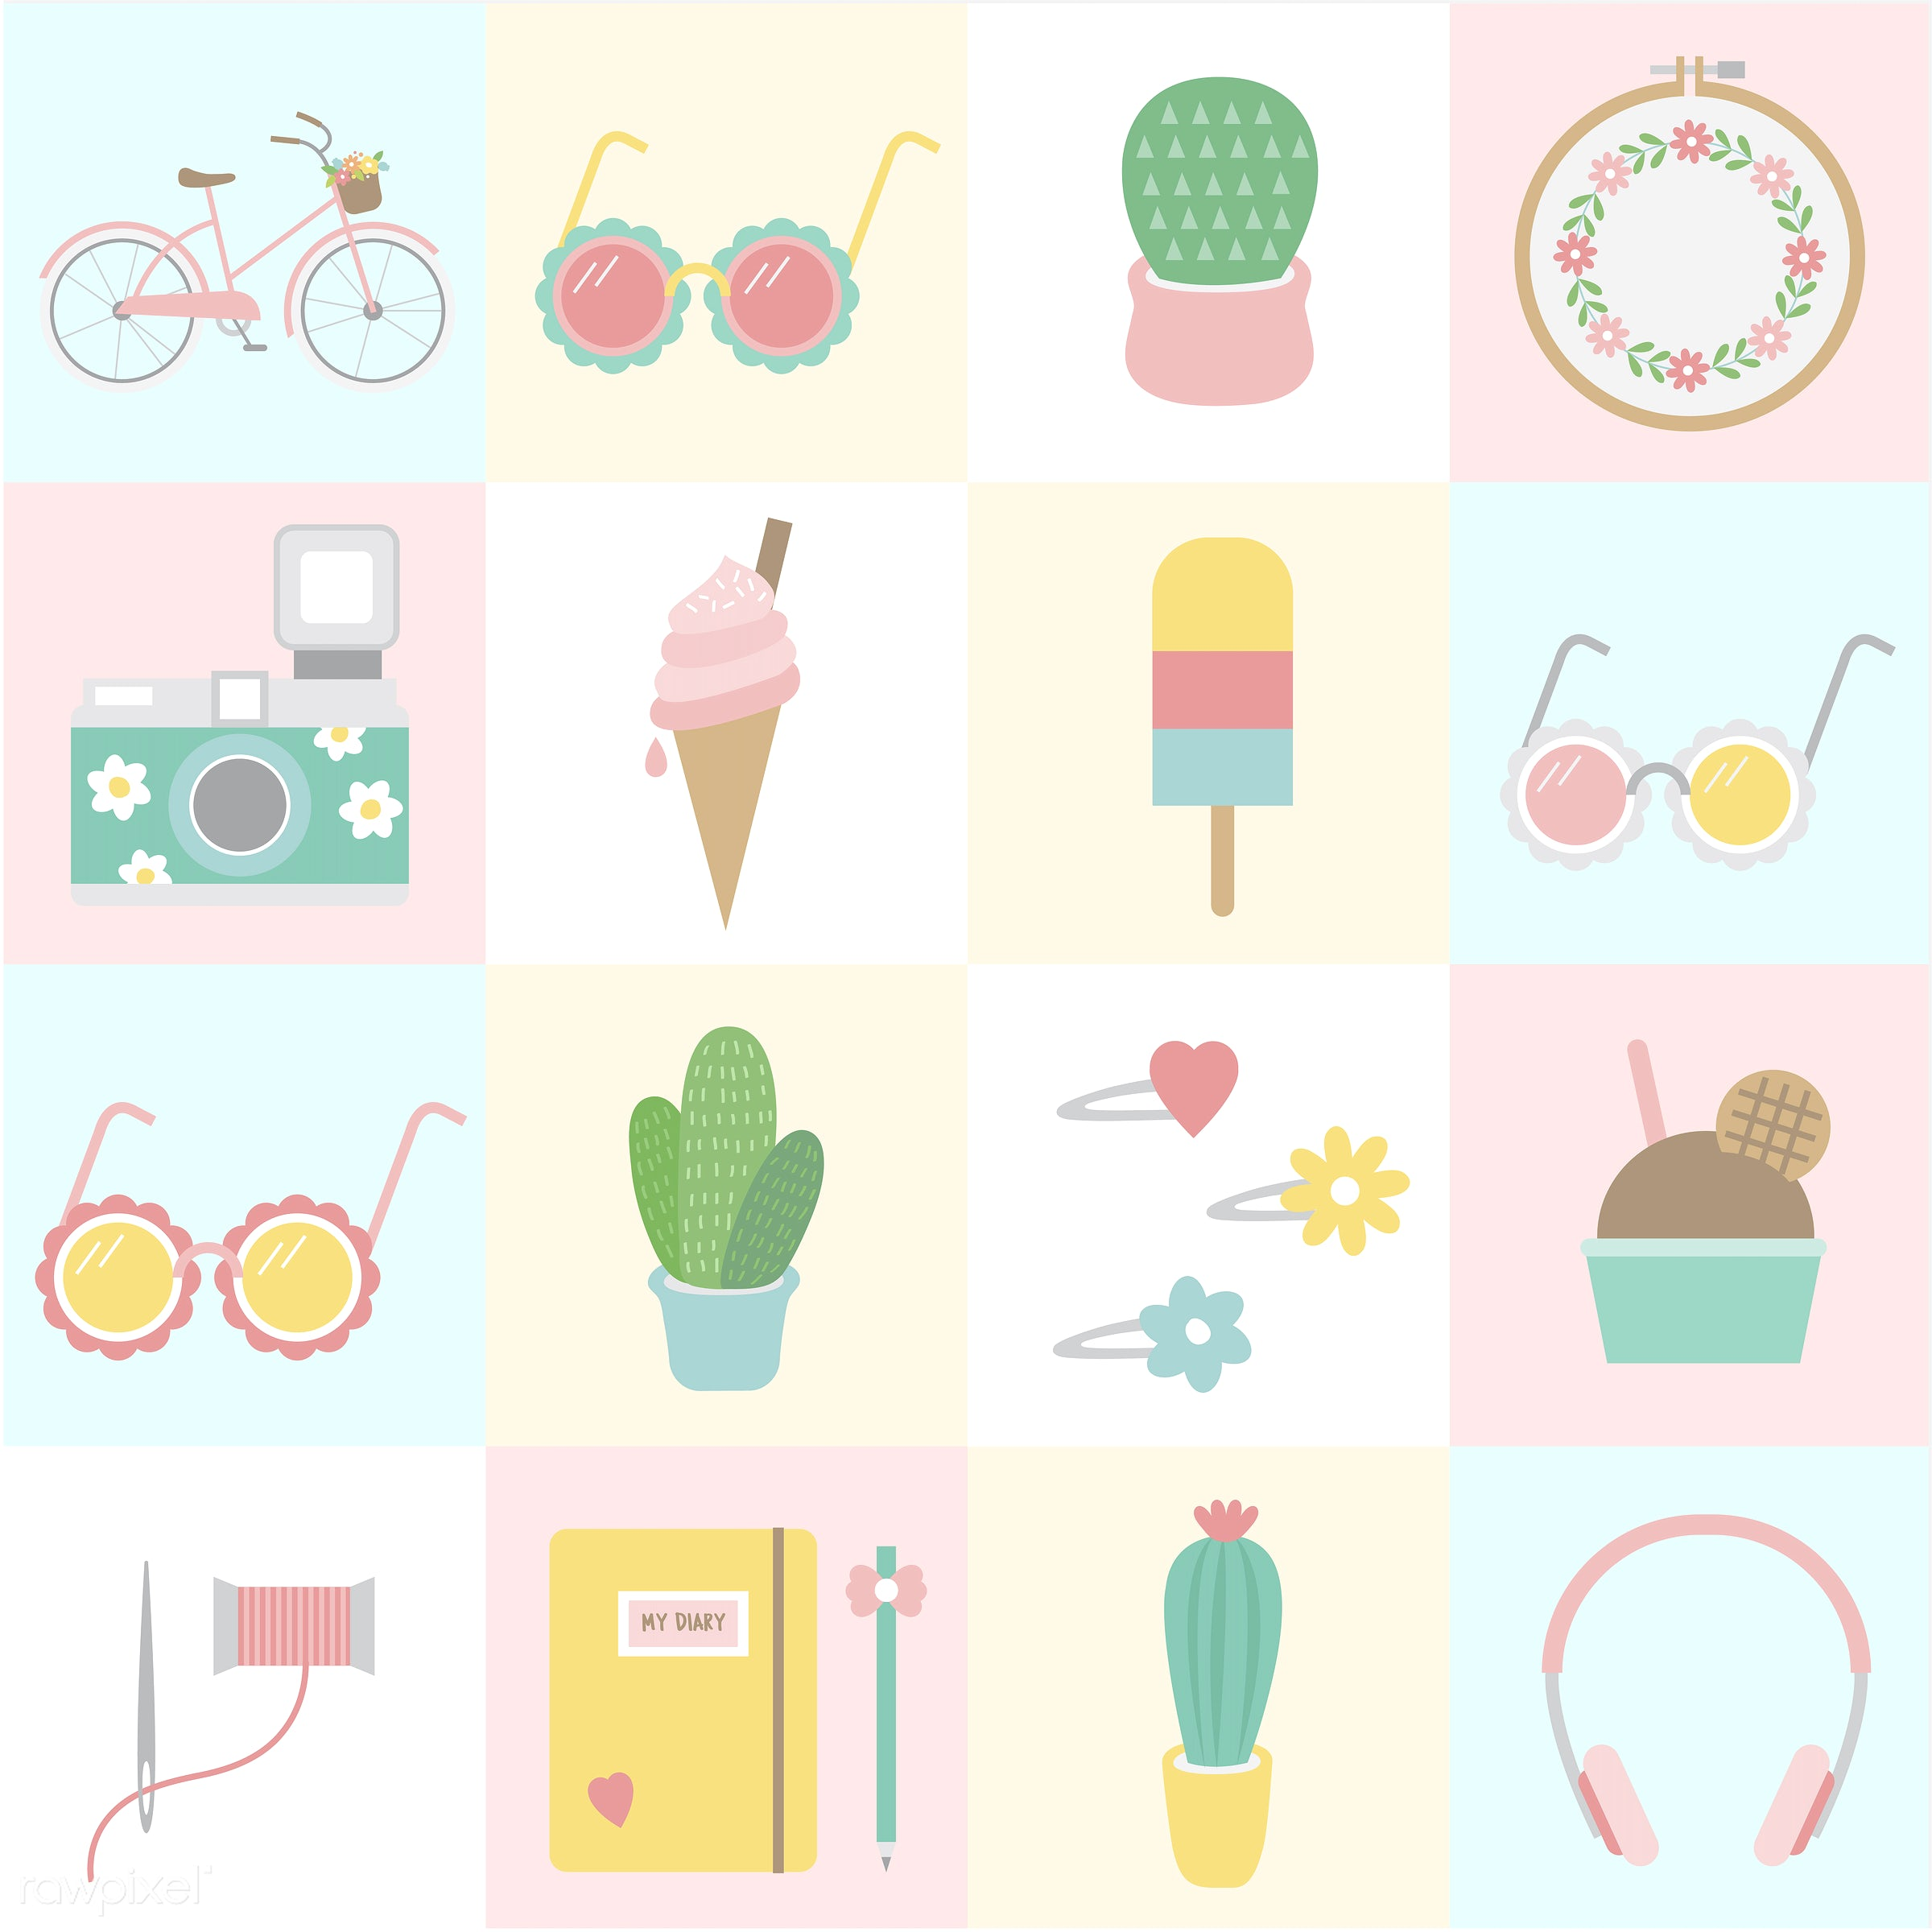 Collection of technology vectors - vector, illustration, graphic, cute, sweet, girly, pastel, collection, set, summer,...